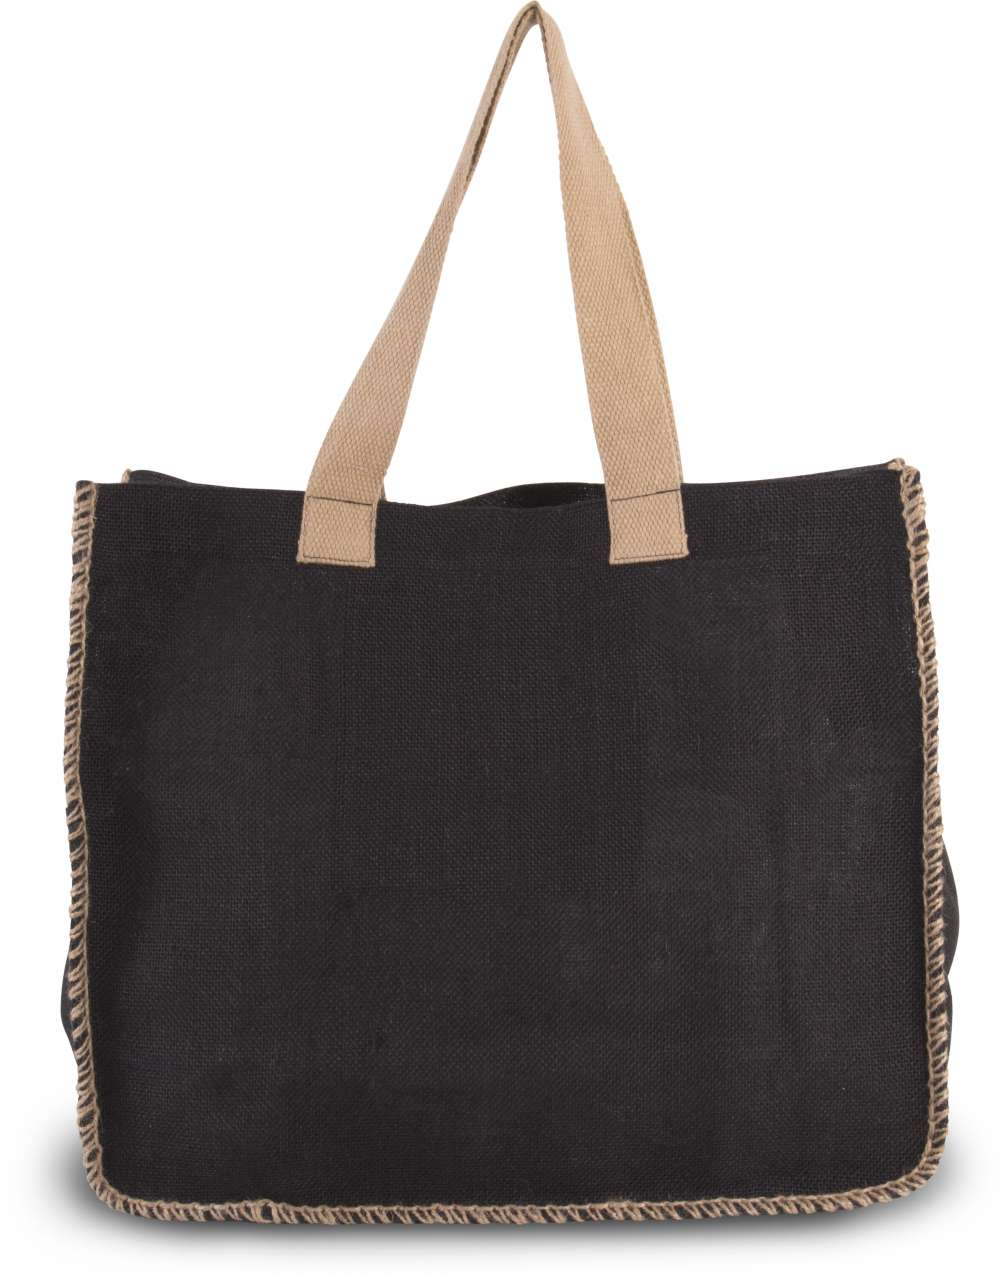 JUTE BAG WITH CONTRAST STITCHING